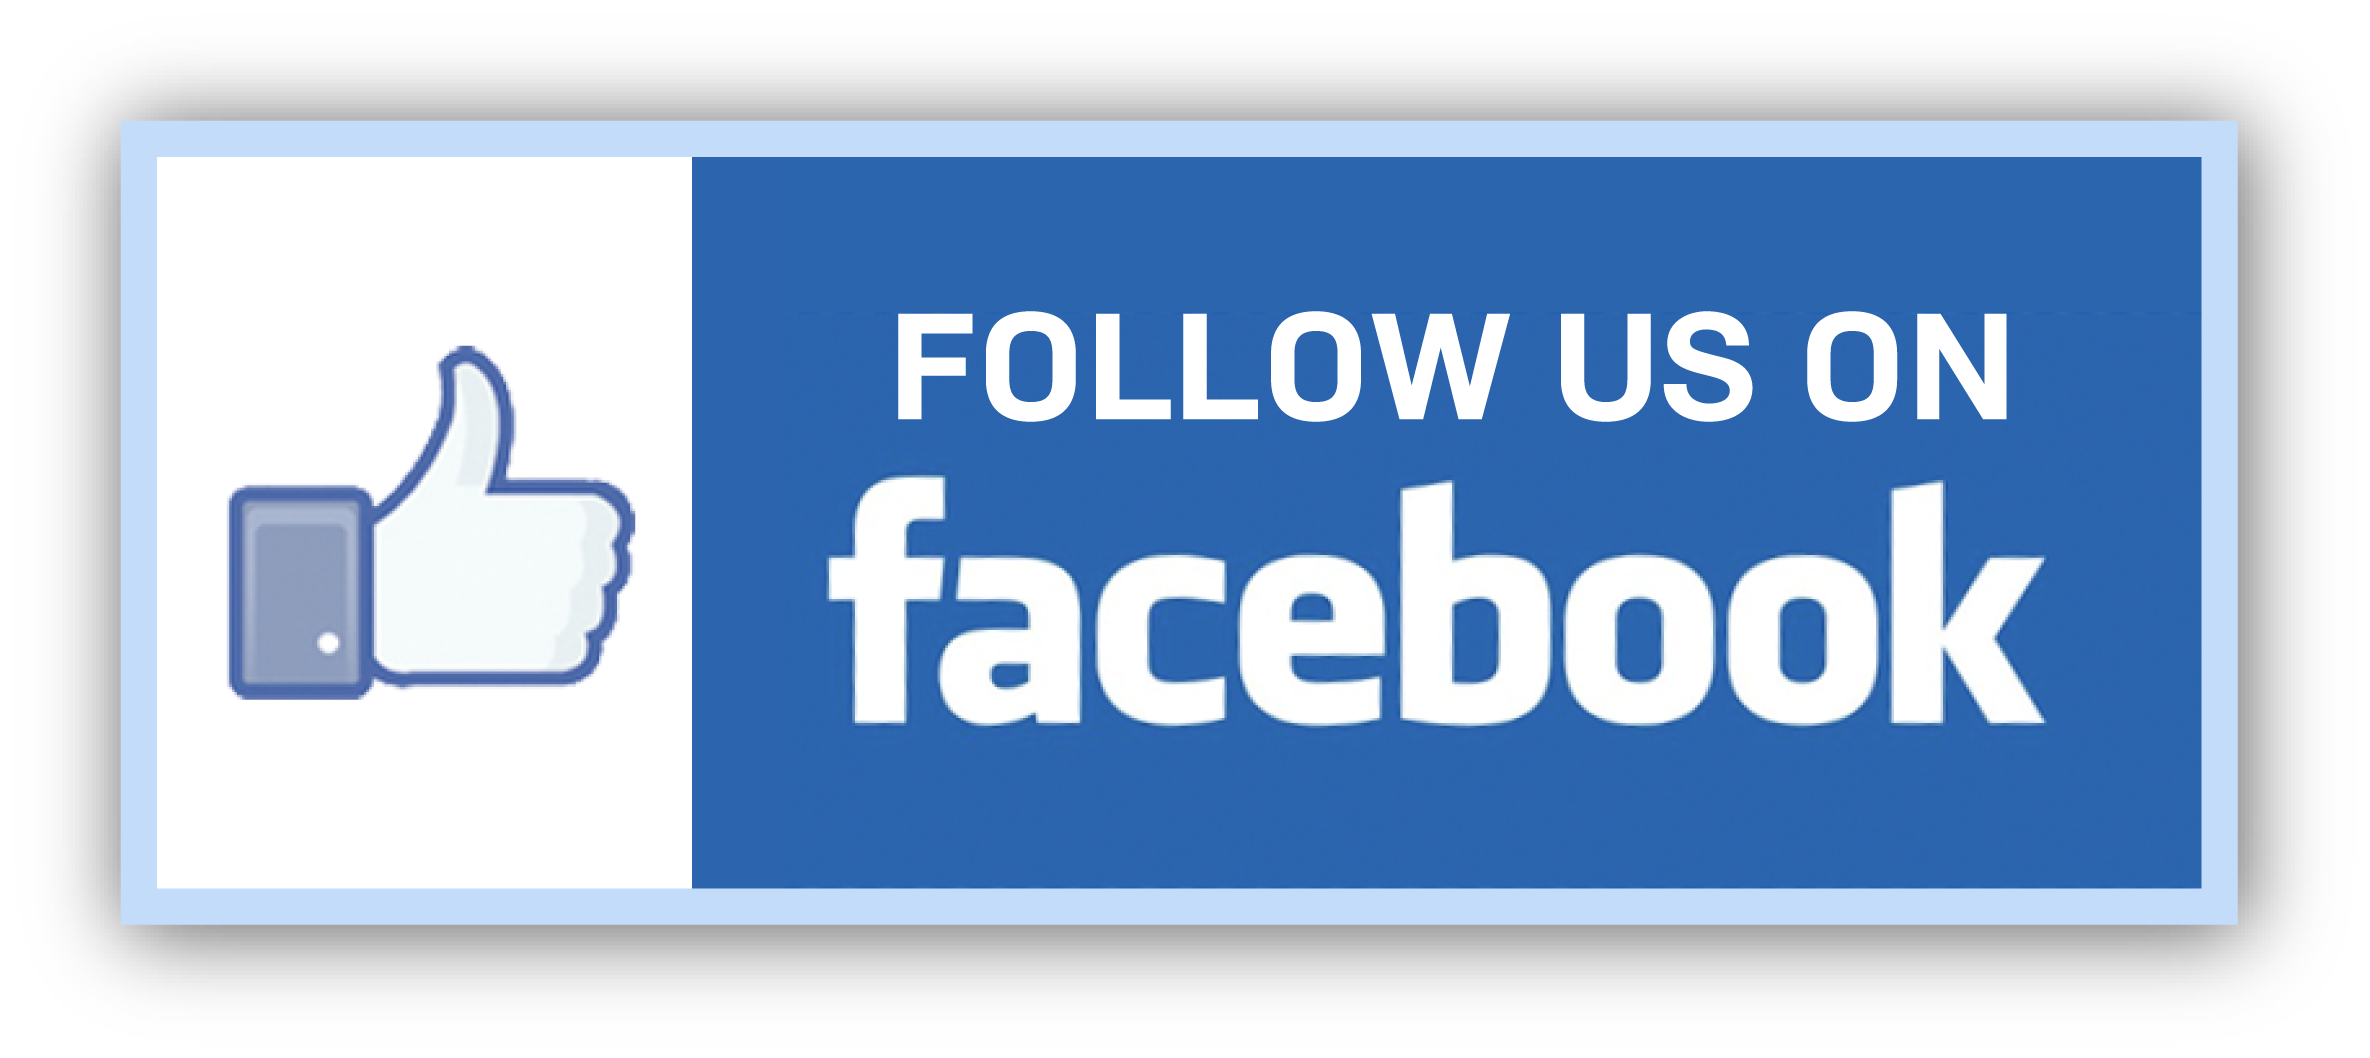 Follow_us_on_Facebook.png